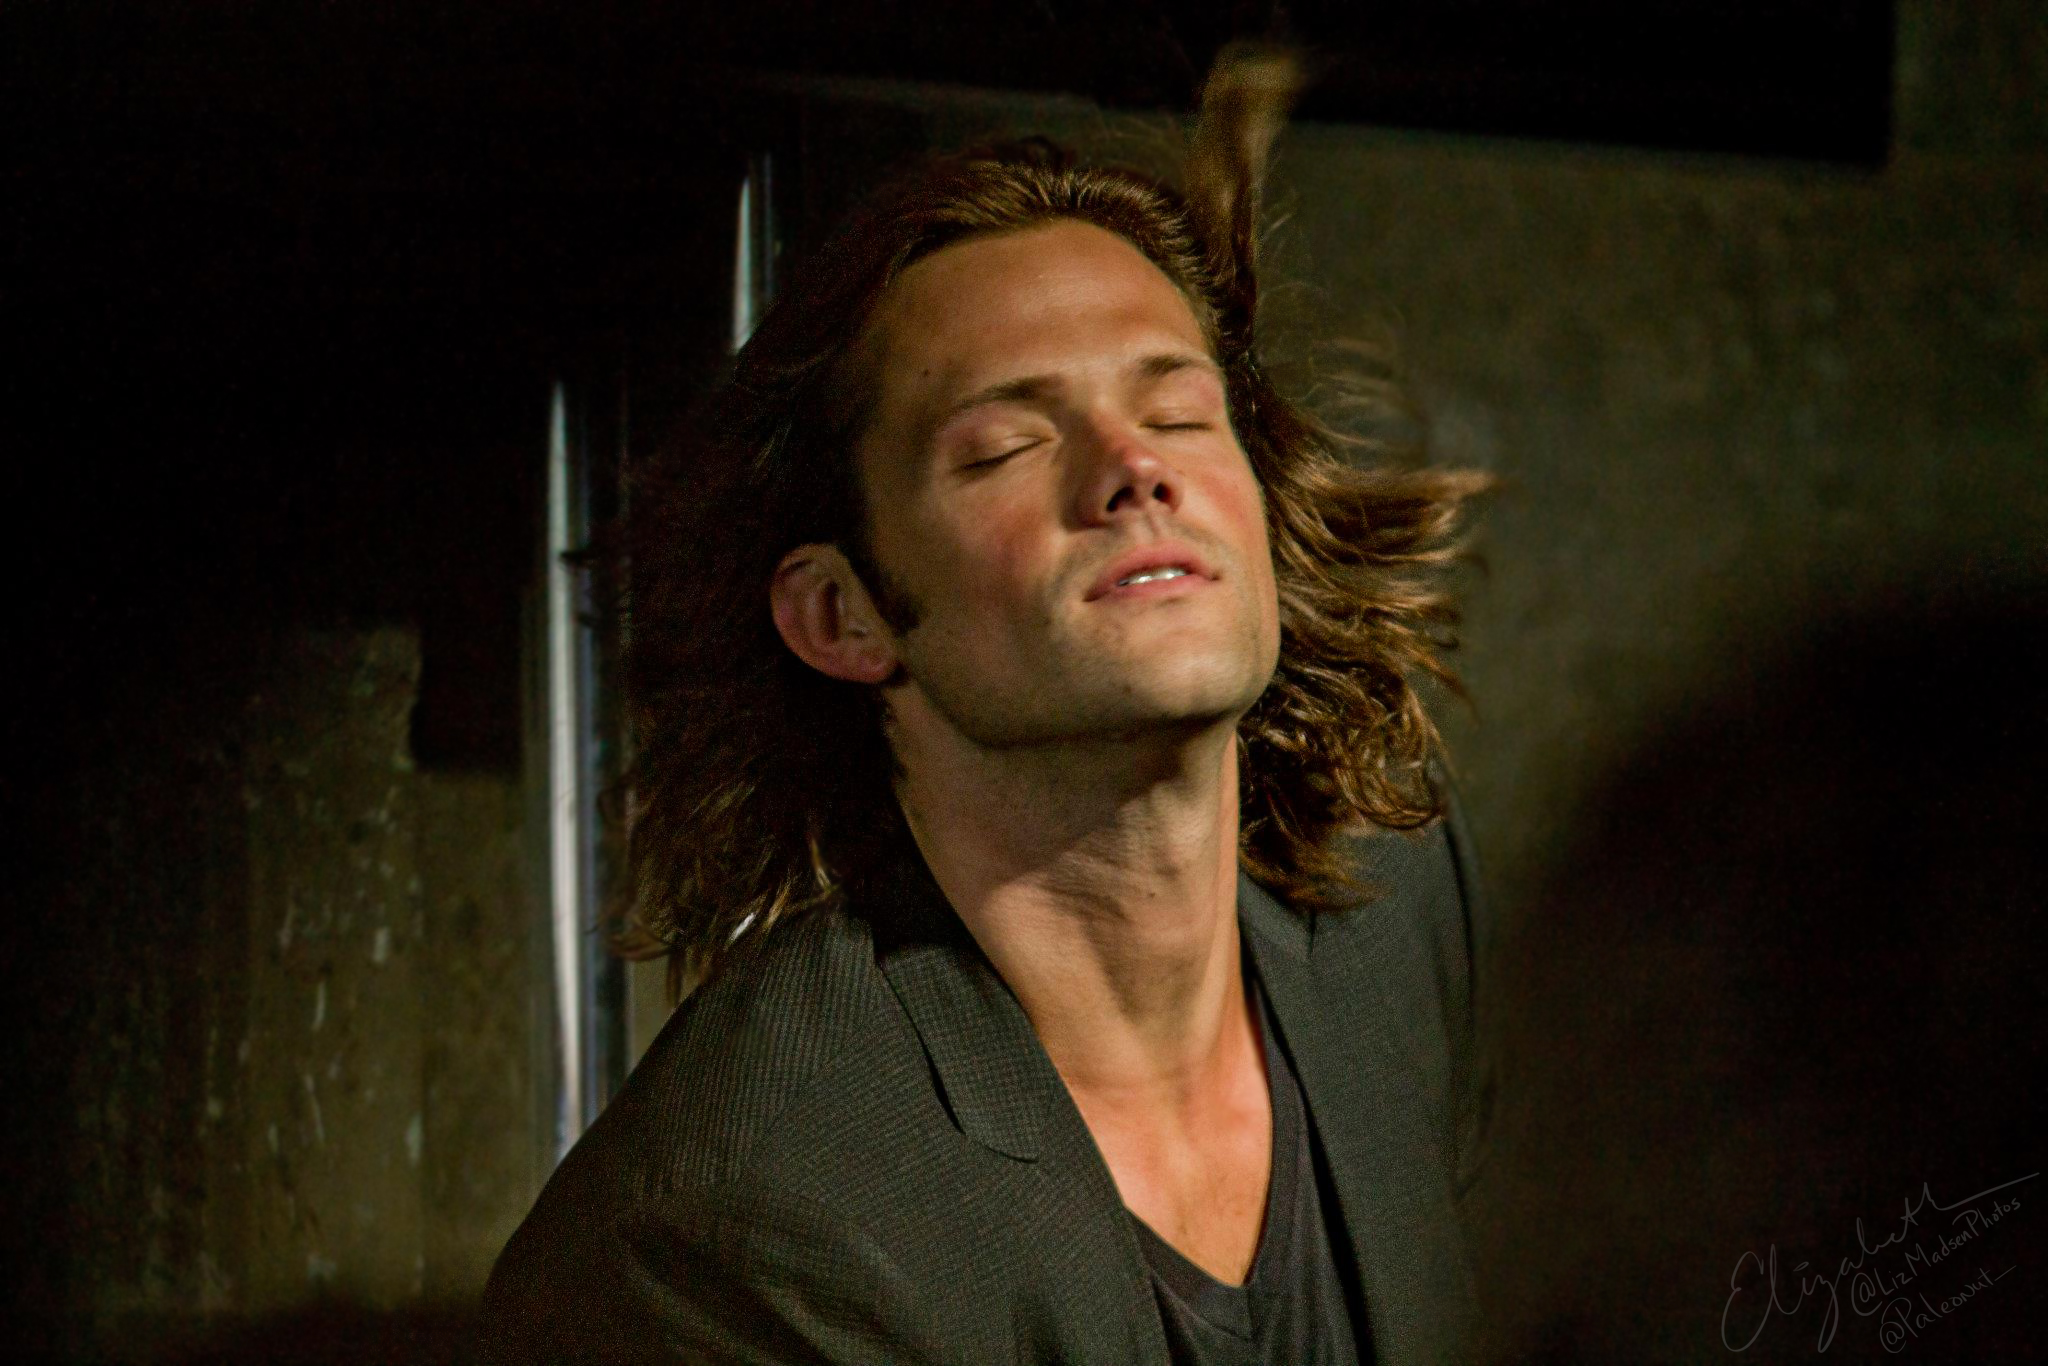 NerdHQ2012 Jared hair whirl wm LizMadsen